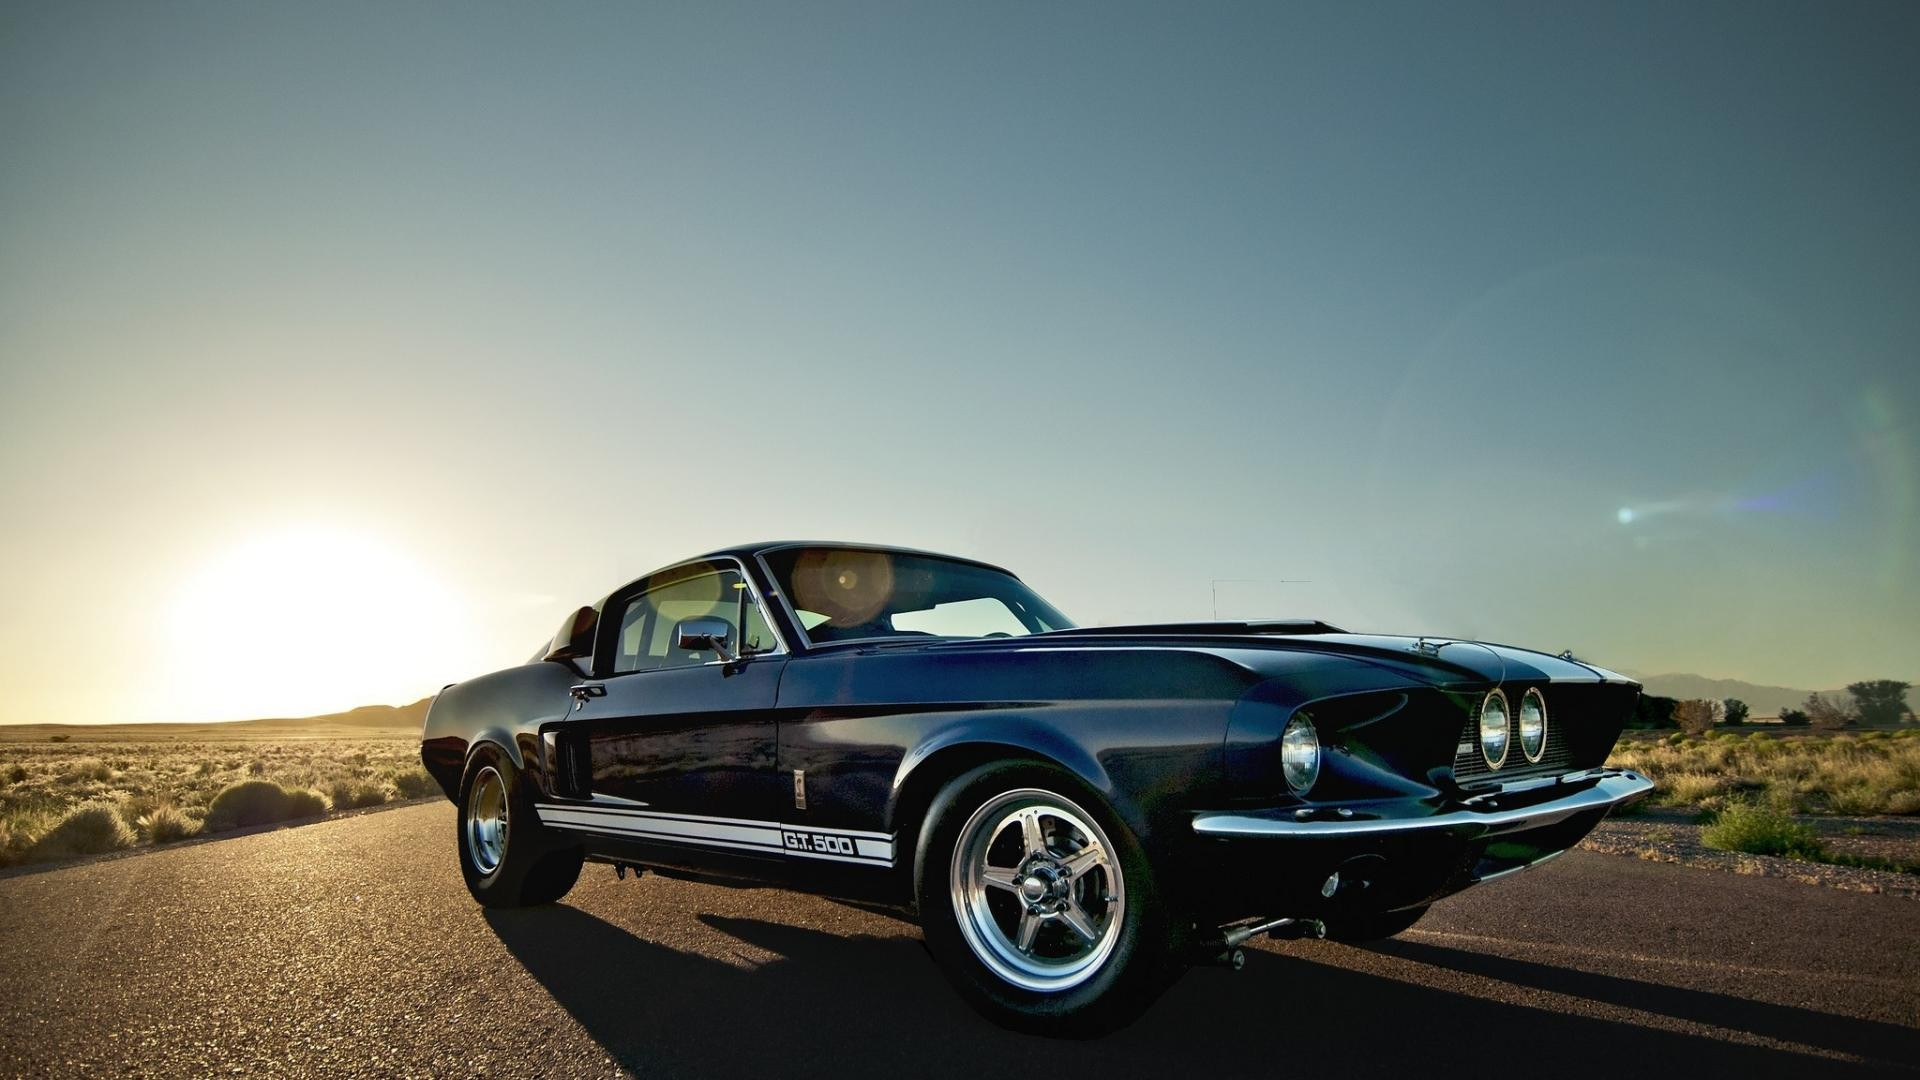 Classic Mustang Background